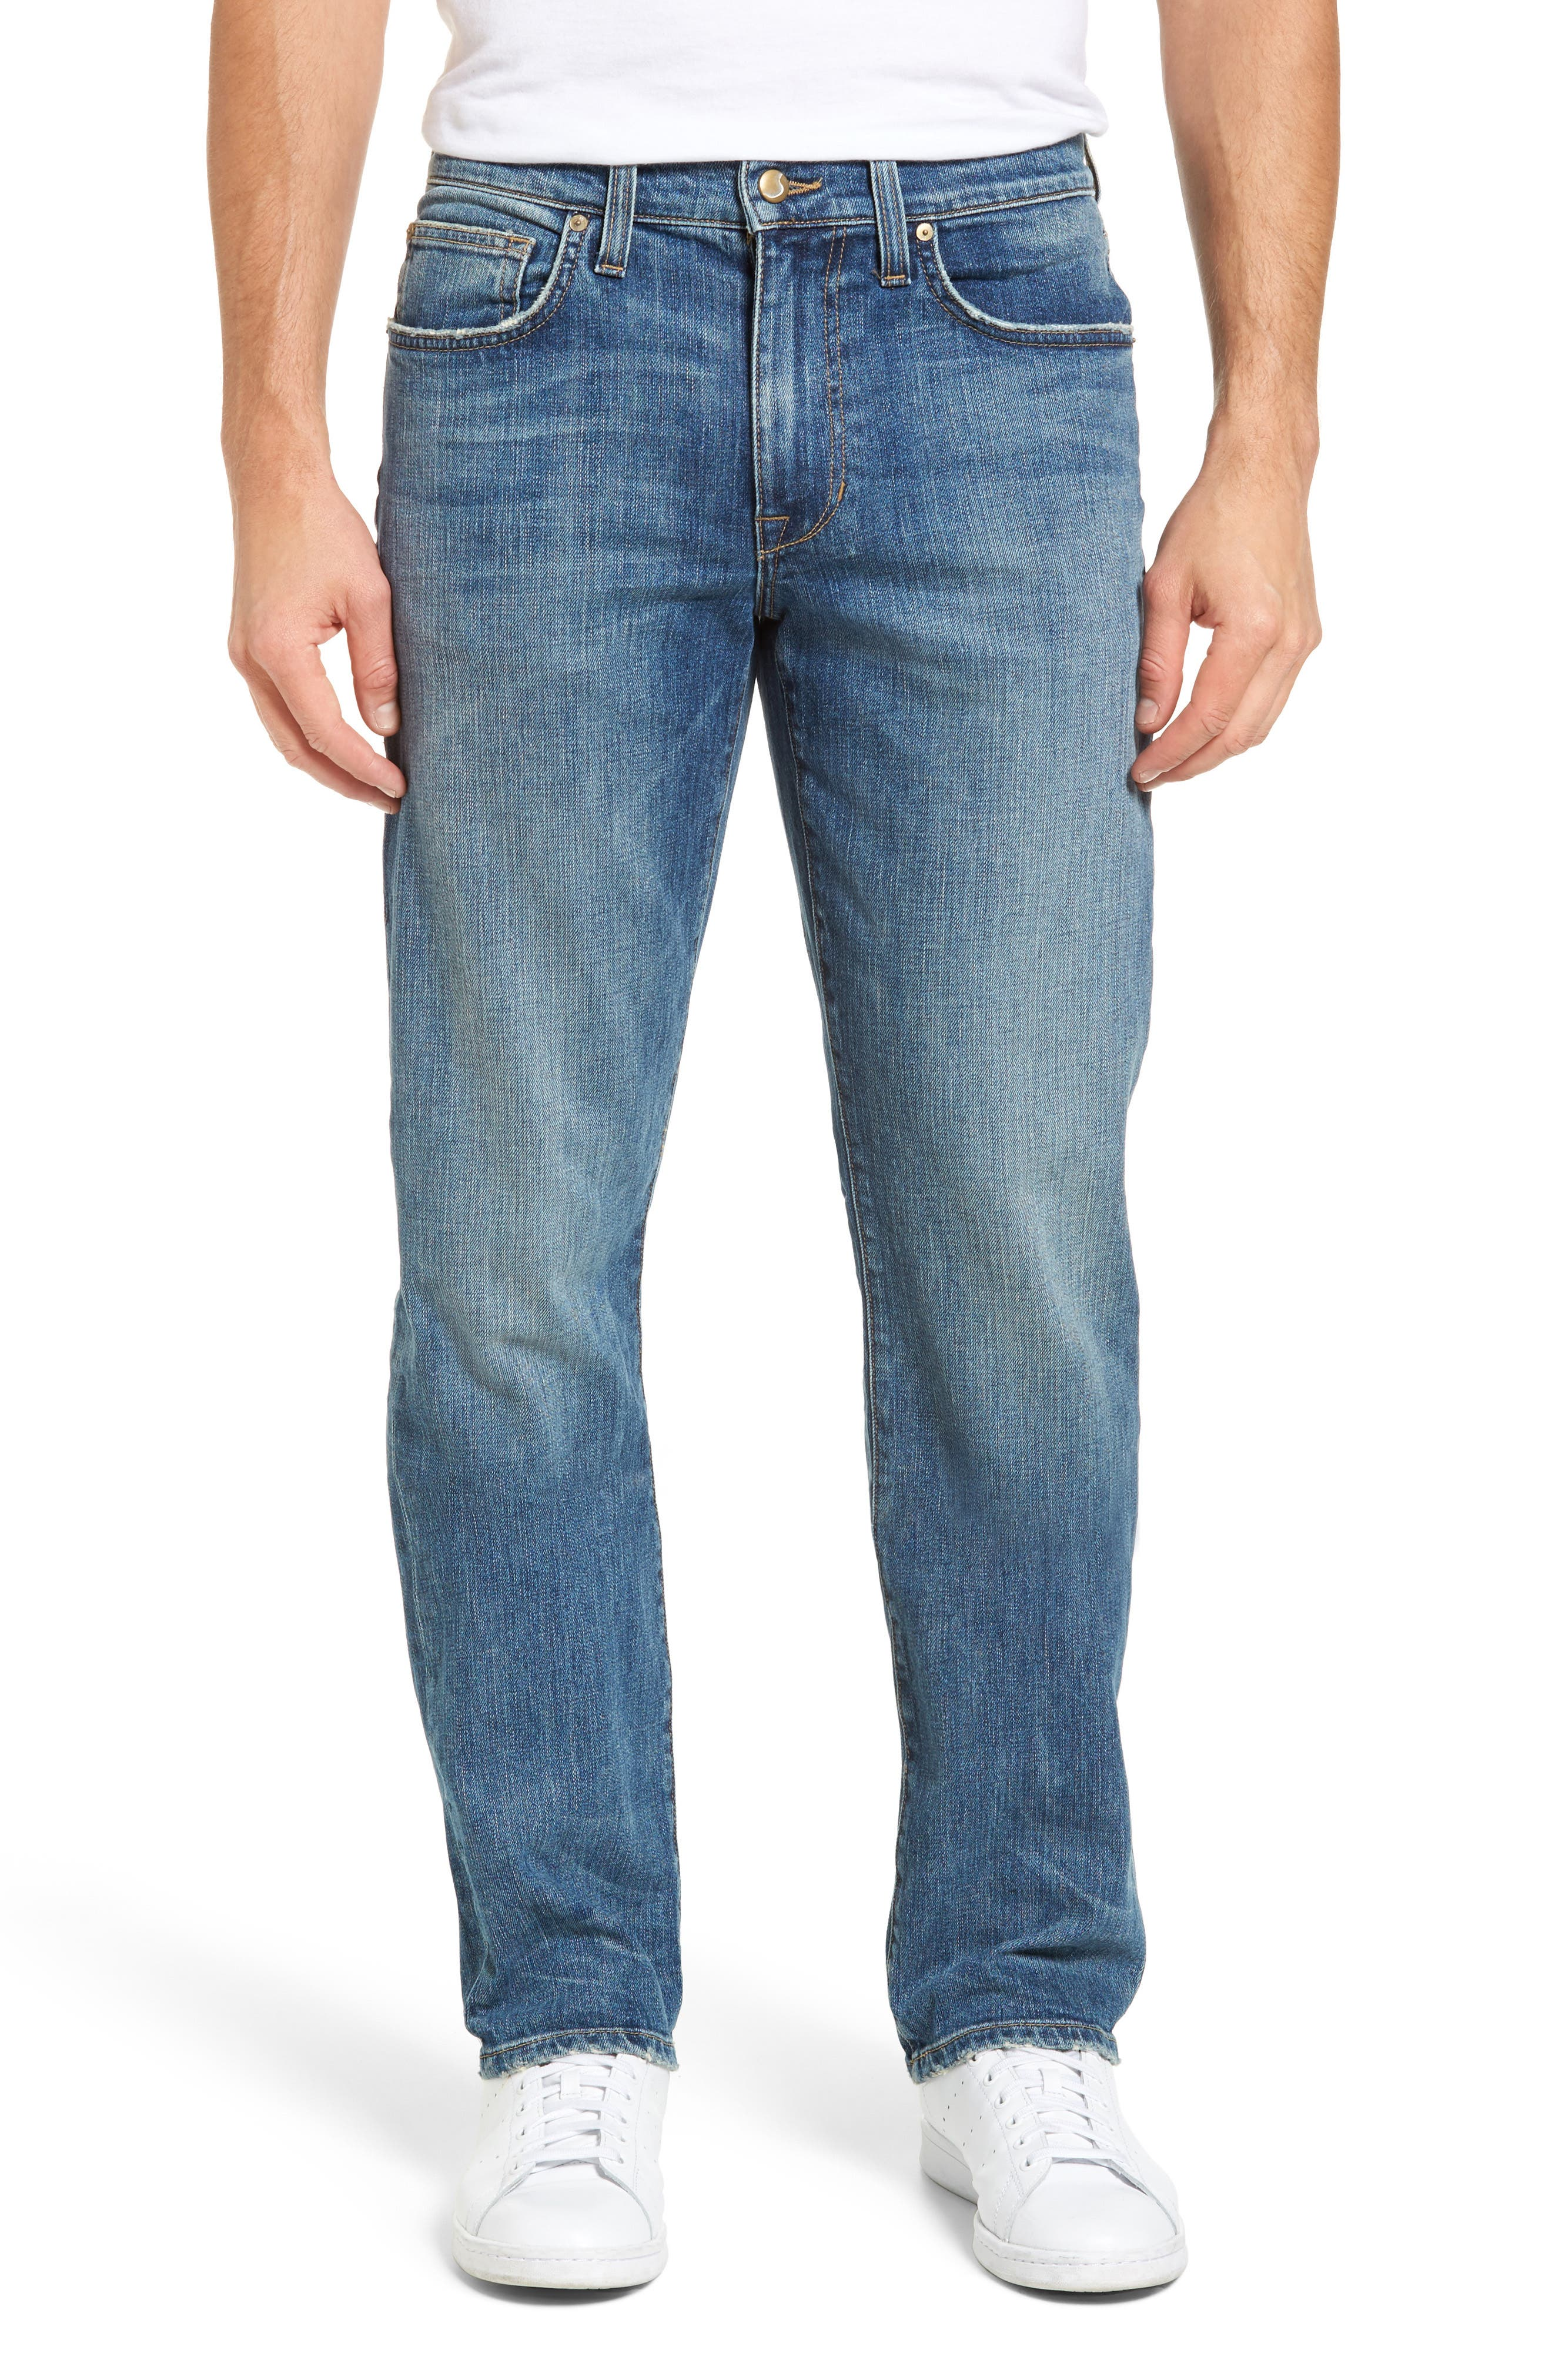 Brixton Slim Straight Fit Jeans,                         Main,                         color, Sheffield